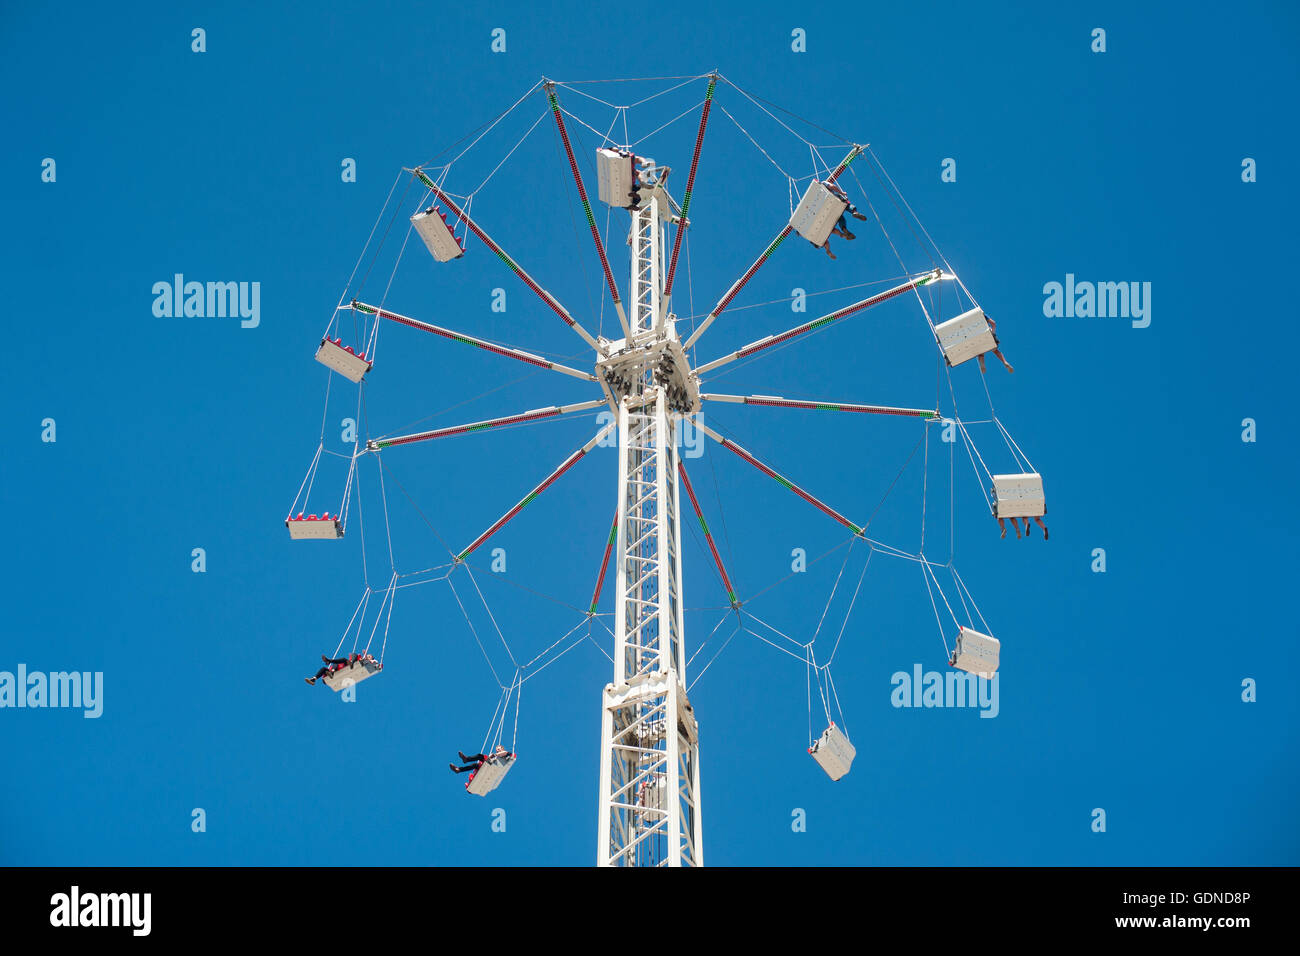 People on fairground ride swings high up in the air against a bright blue sky in summer 2016 - Stock Image